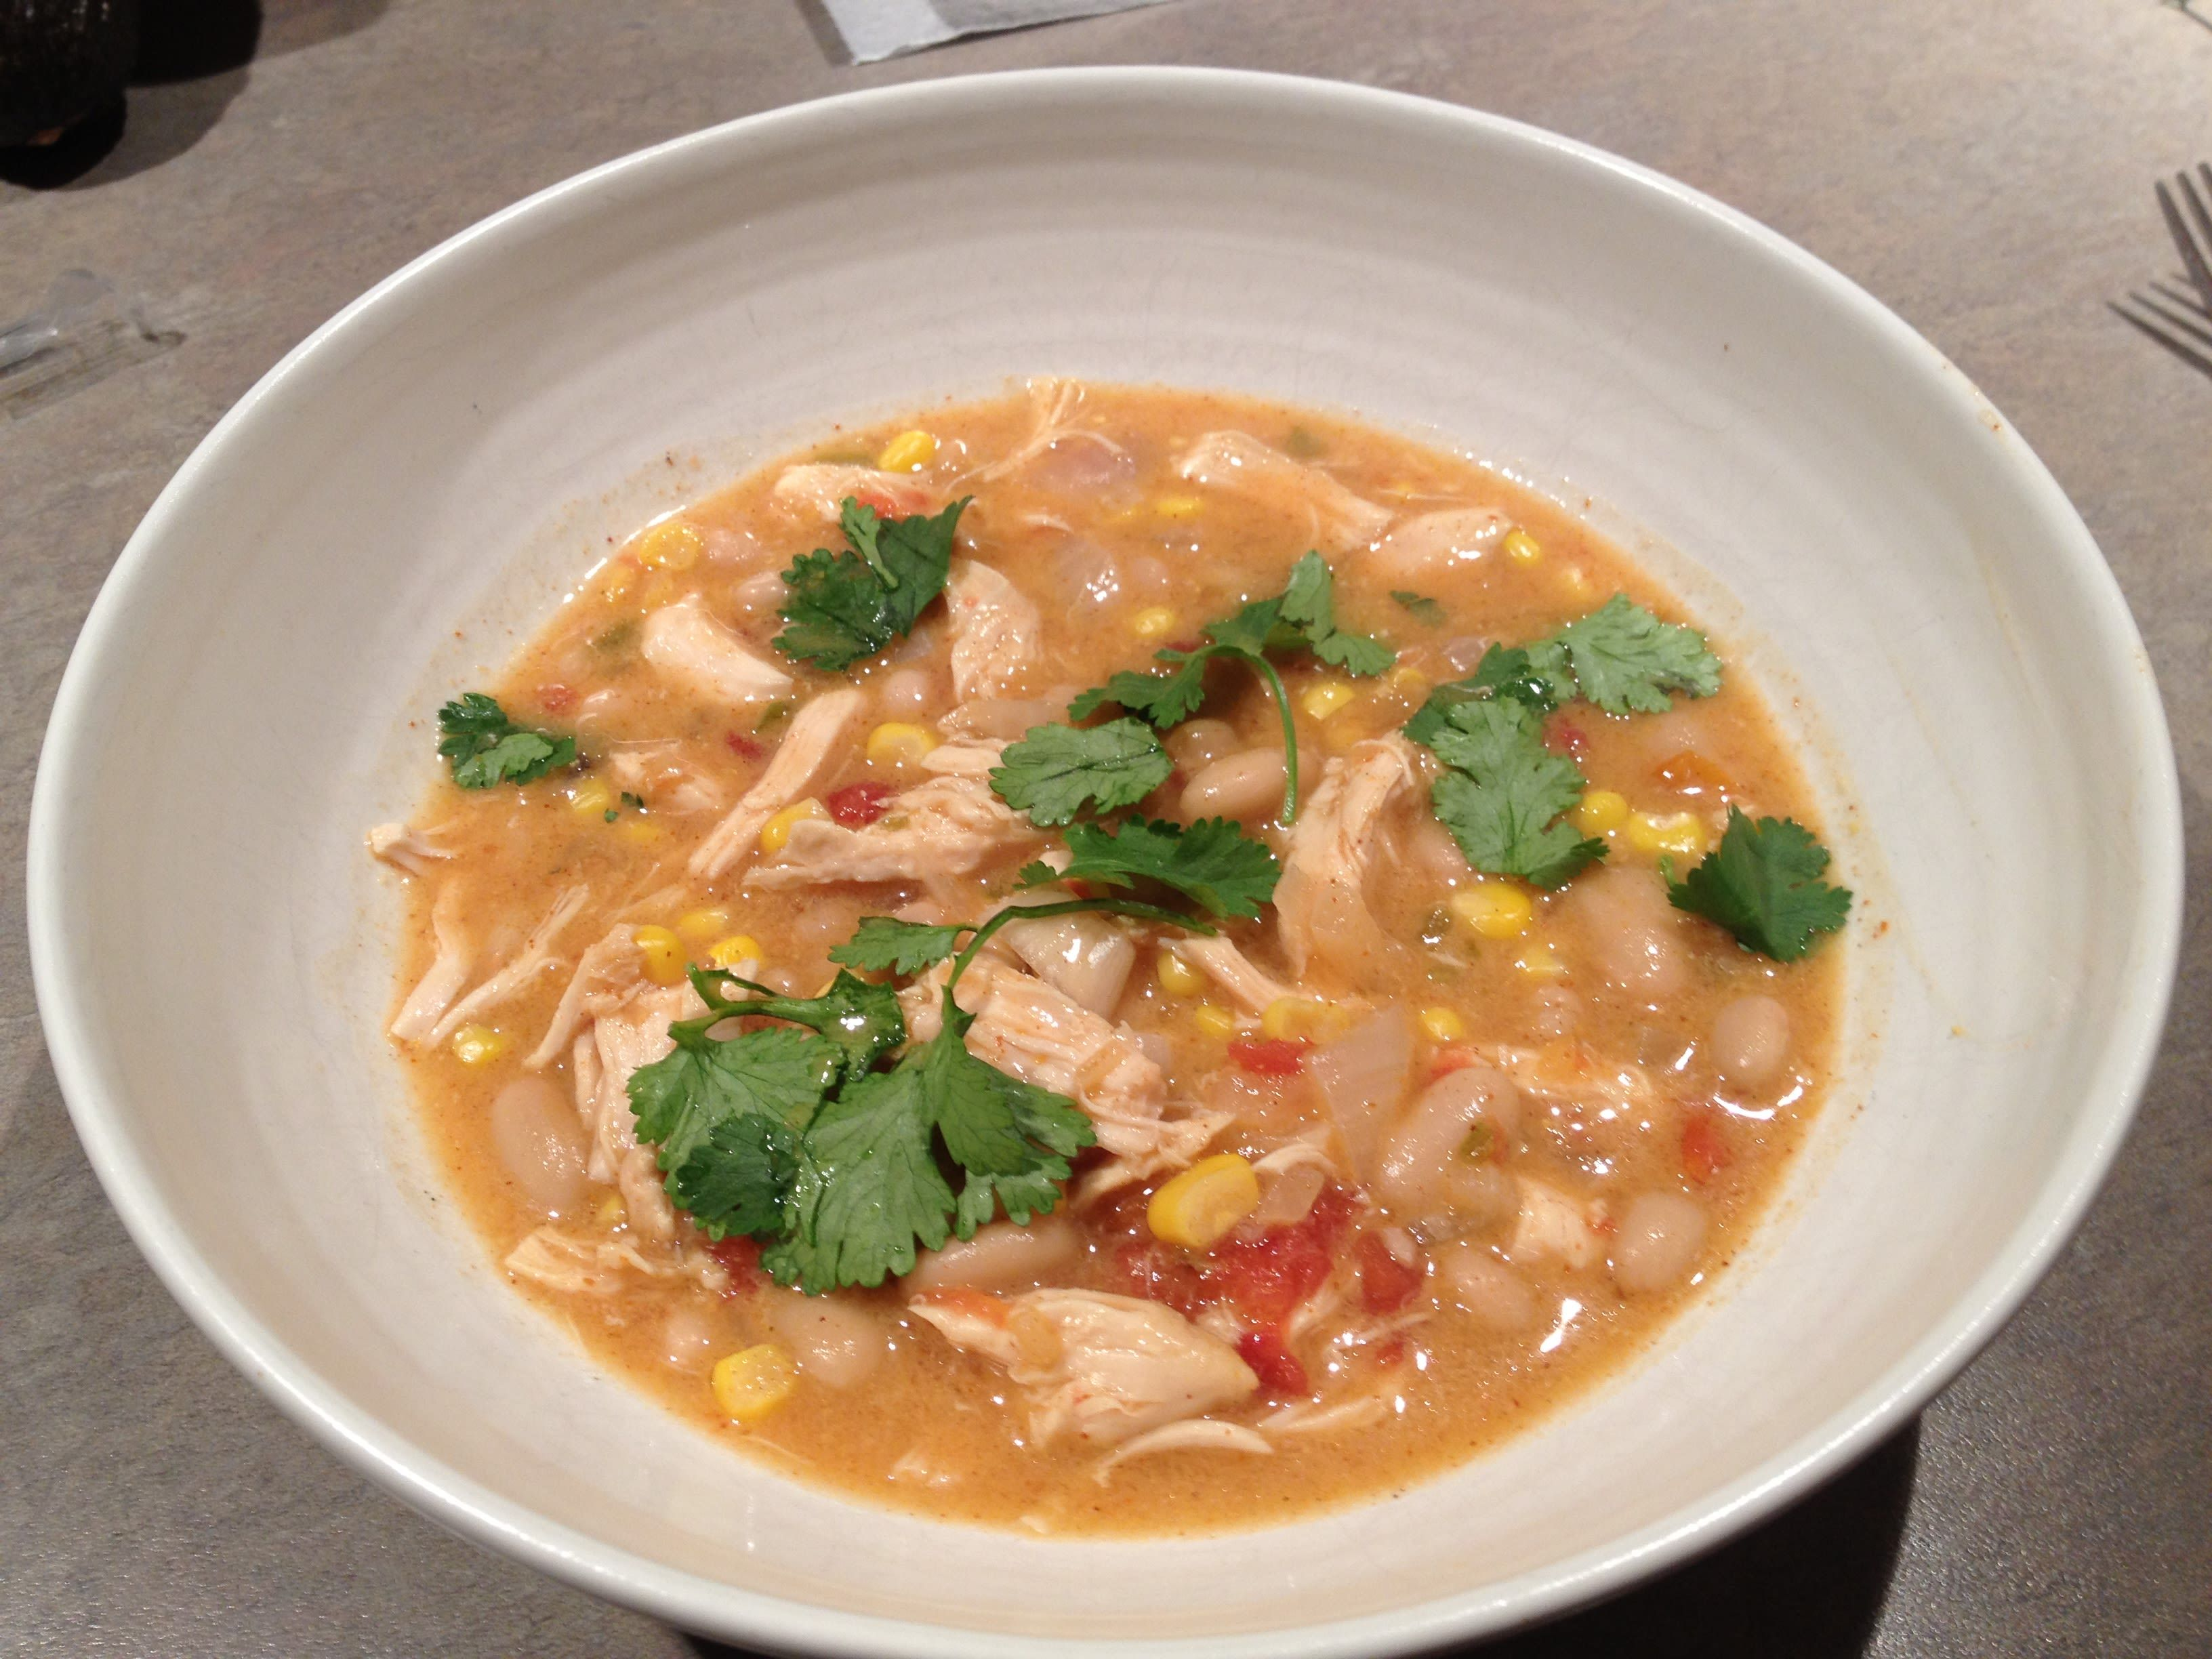 This White Chicken Chili Recipe Is Adapted From A Betty Crocker White Chicken Chili Recipe Crockpot White Chili Chicken Recipe White Chicken Chili Slow Cooker